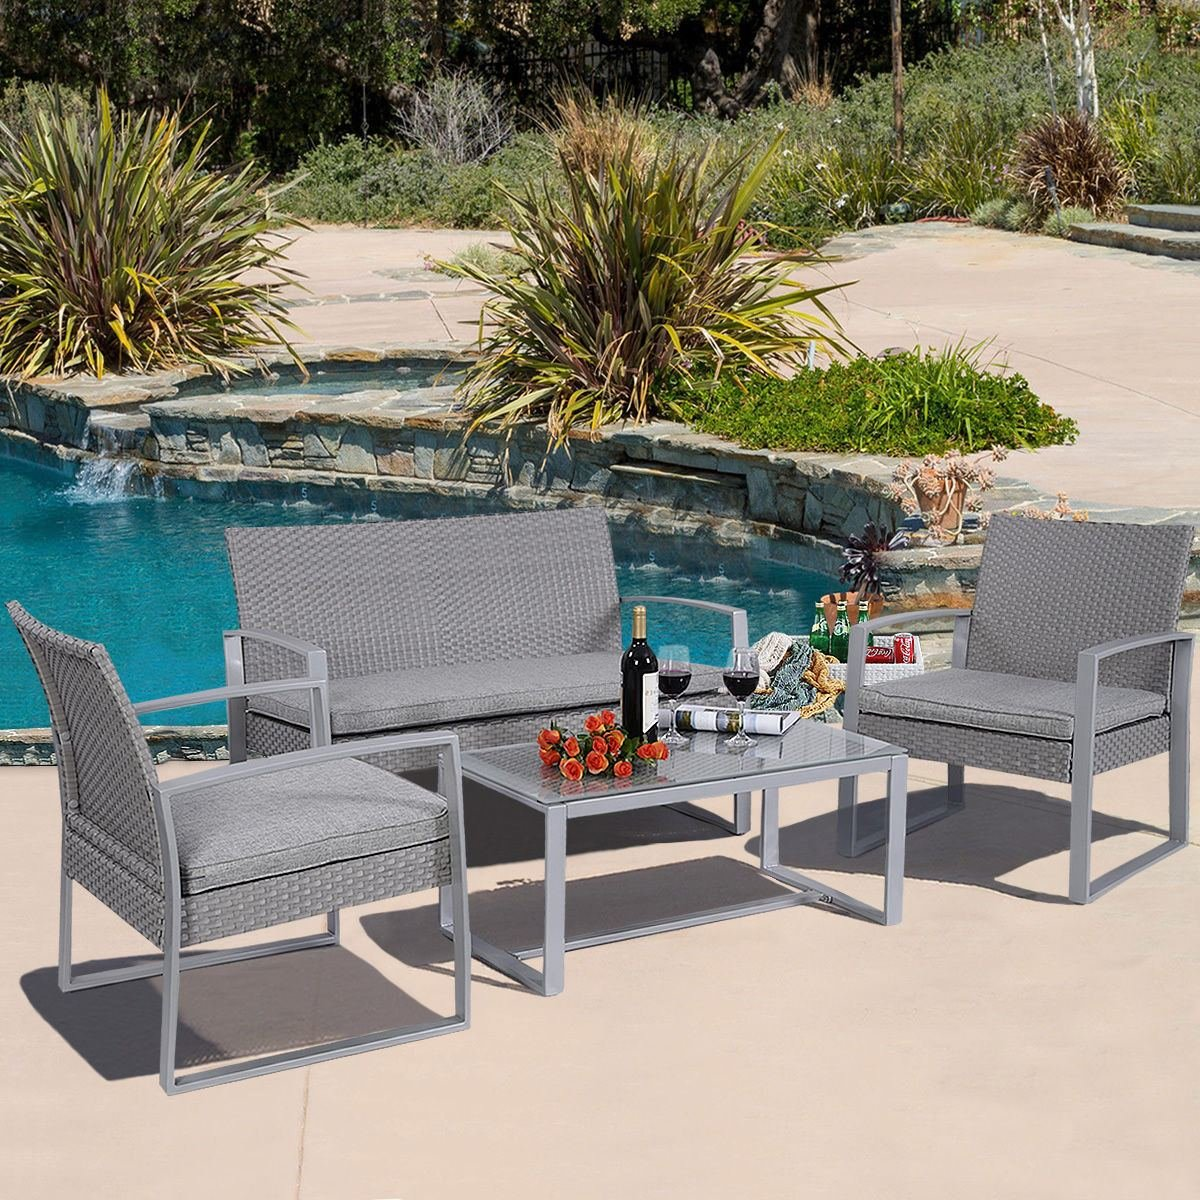 white pleasant outdoor wicker furniture set patio